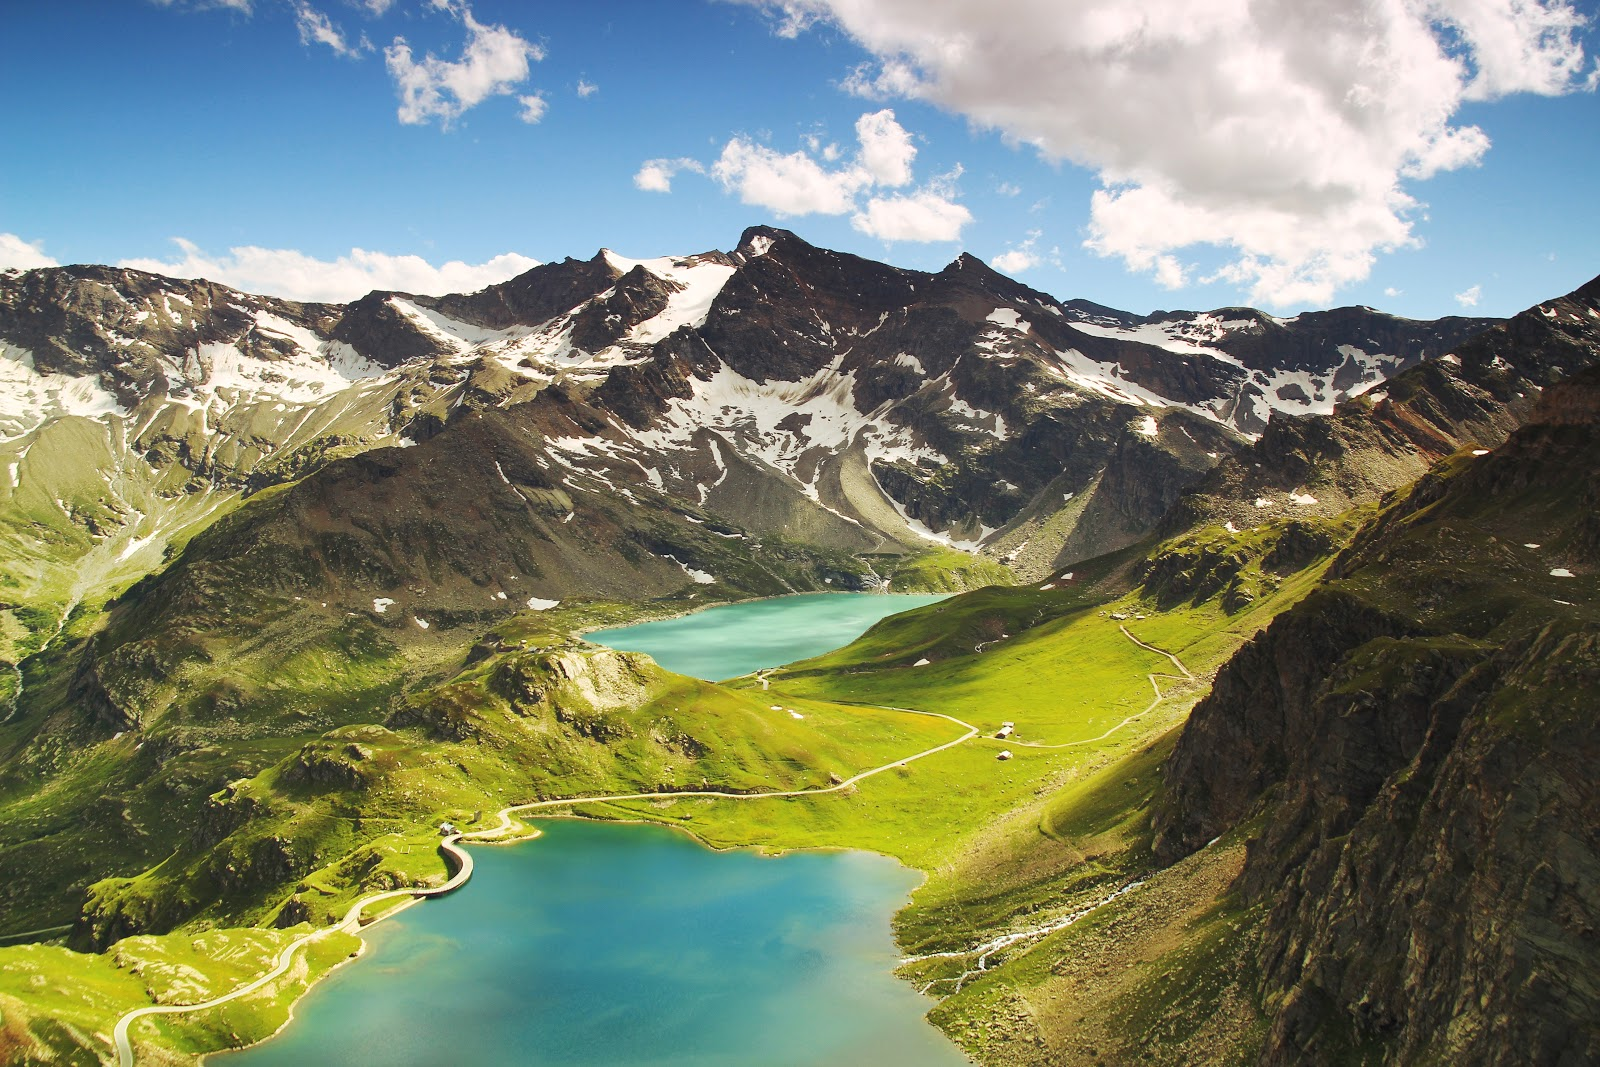 aerial-alpine-ceresole-reale-nature-images